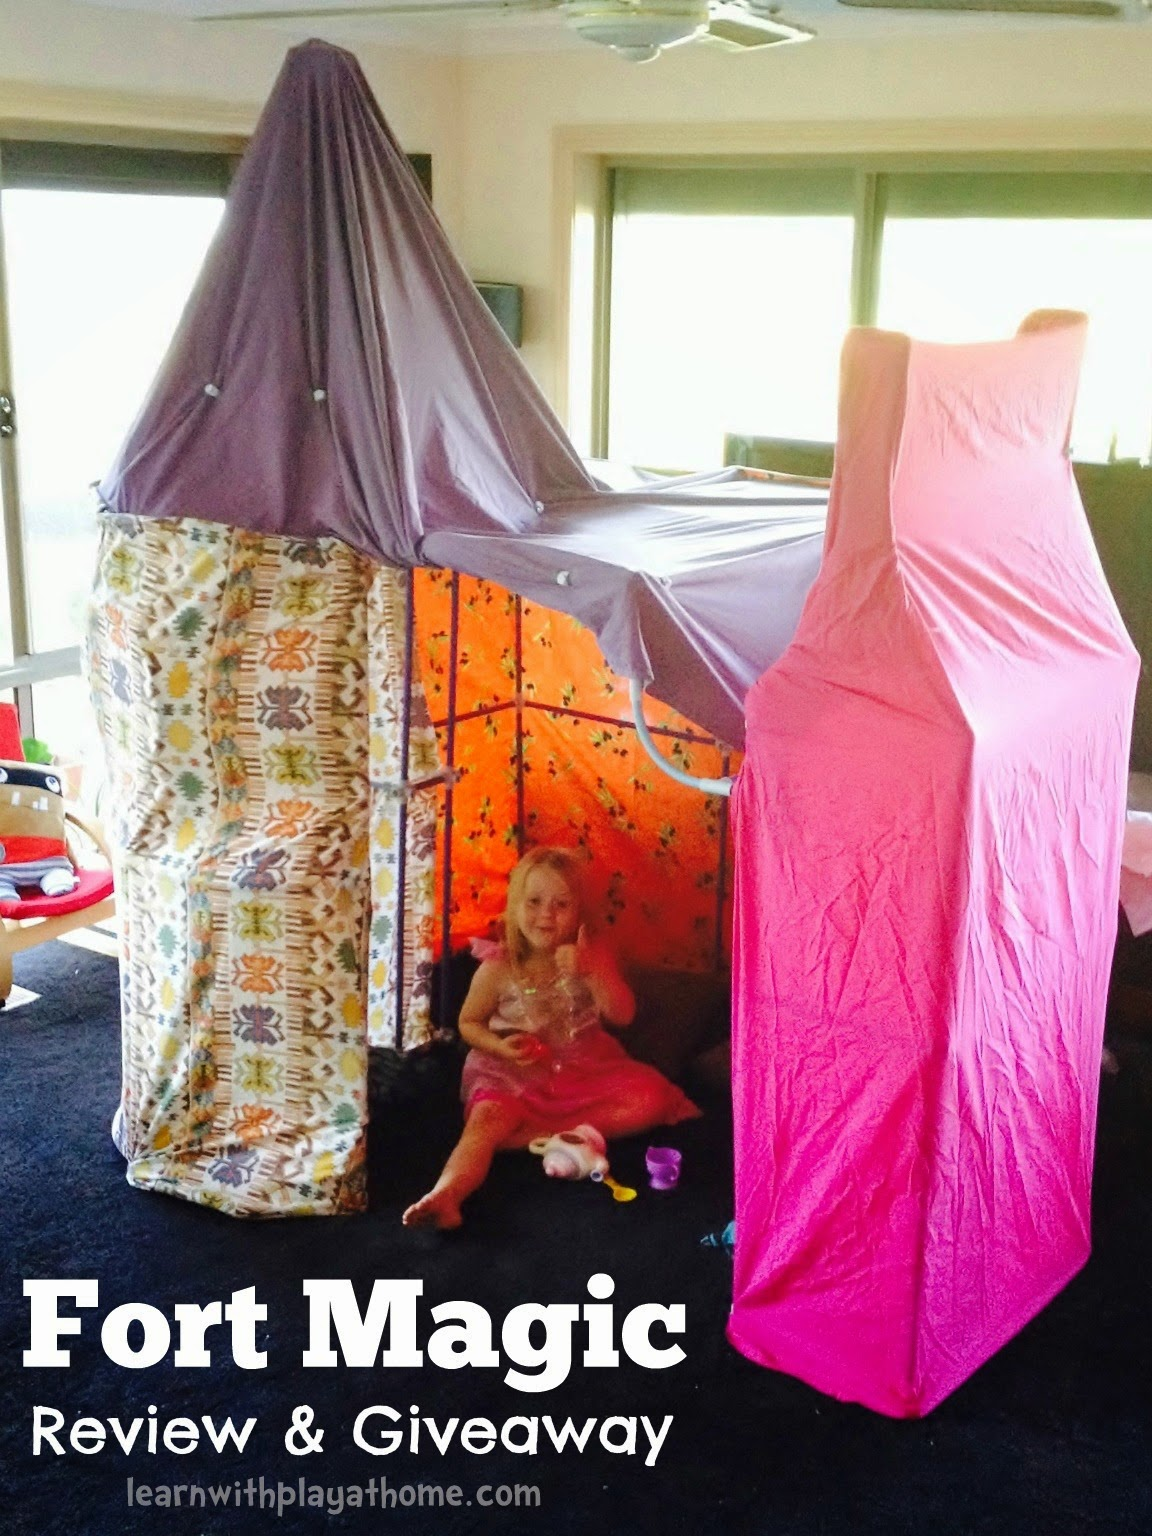 Apr 7 2014 & Learn with Play at Home: Fort Magic Kit Review and Giveaway